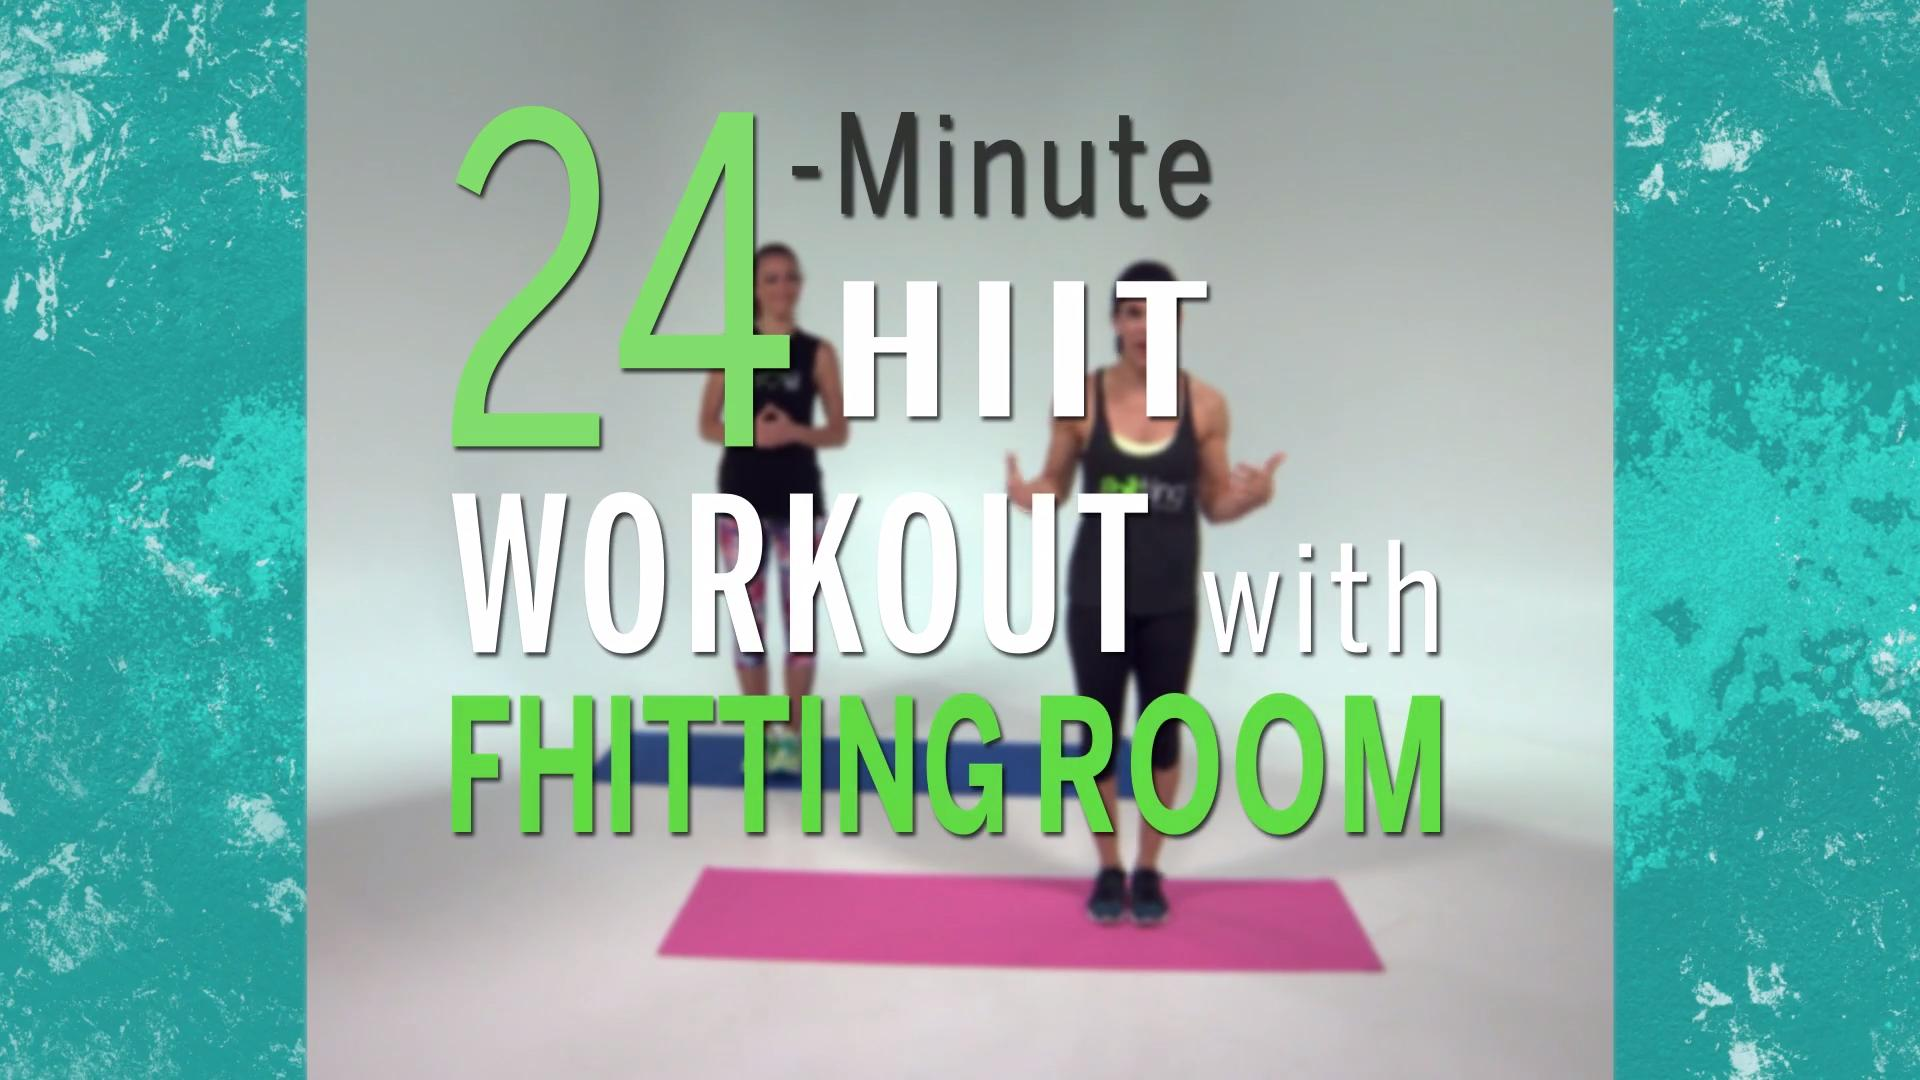 Calorie-torching HIIT workout